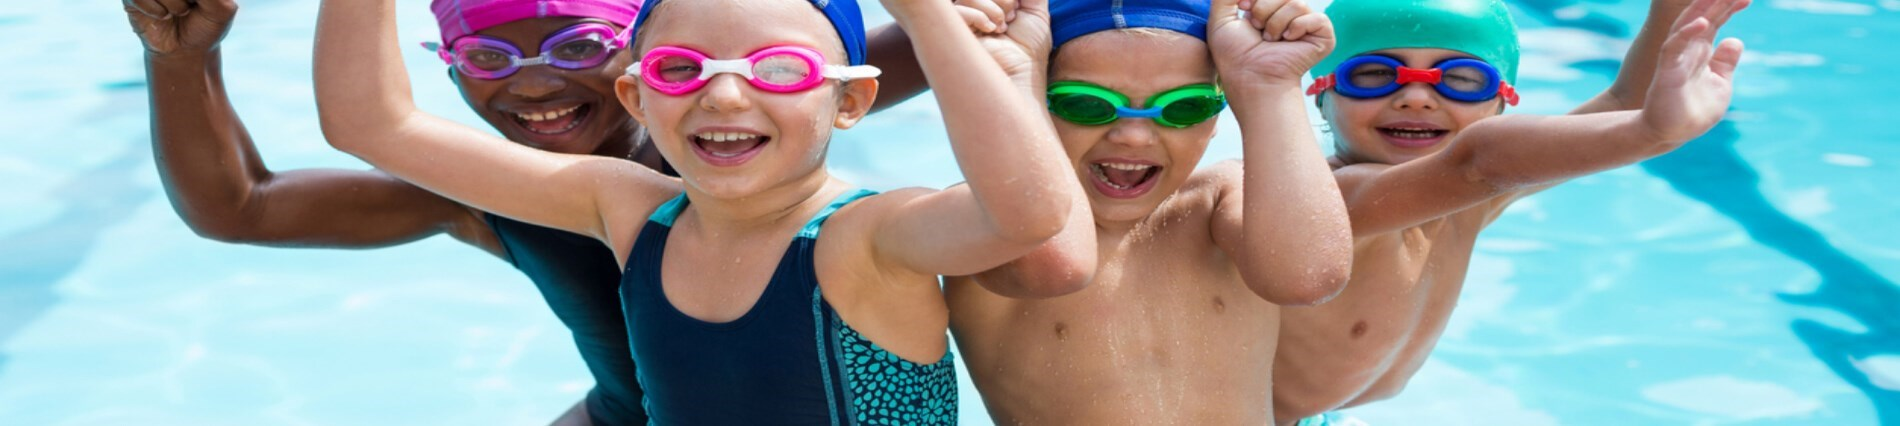 Kids having fun swimming